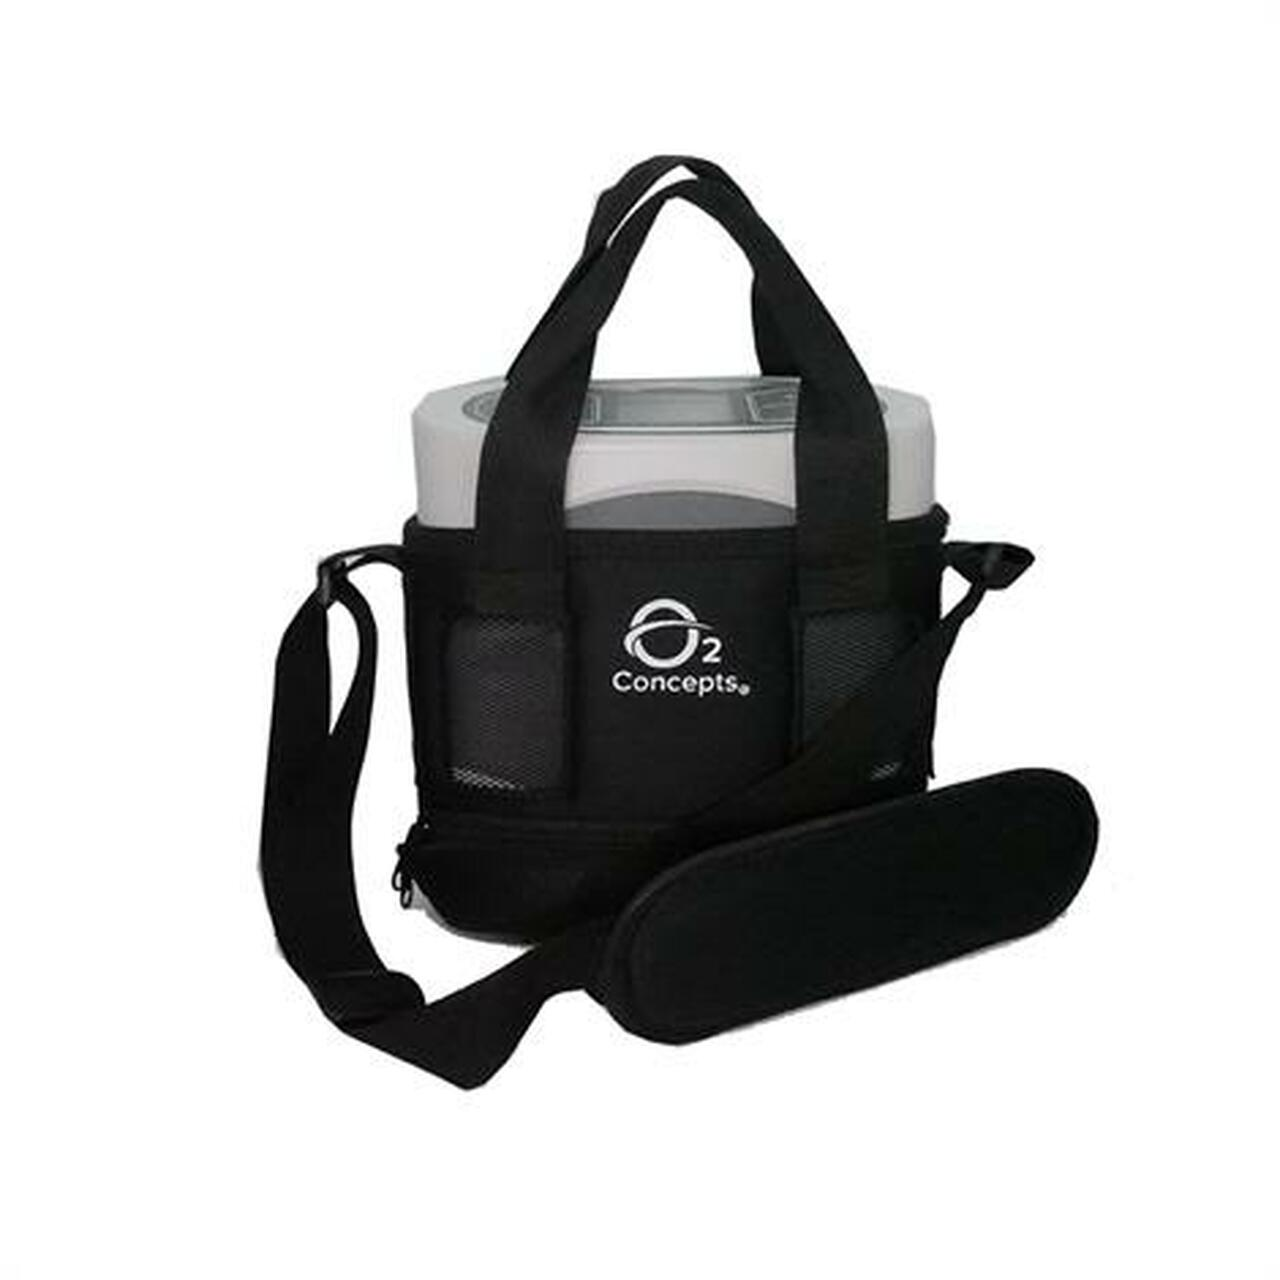 Freedom Portable Oxygen Concentrator Shown in Carry Case